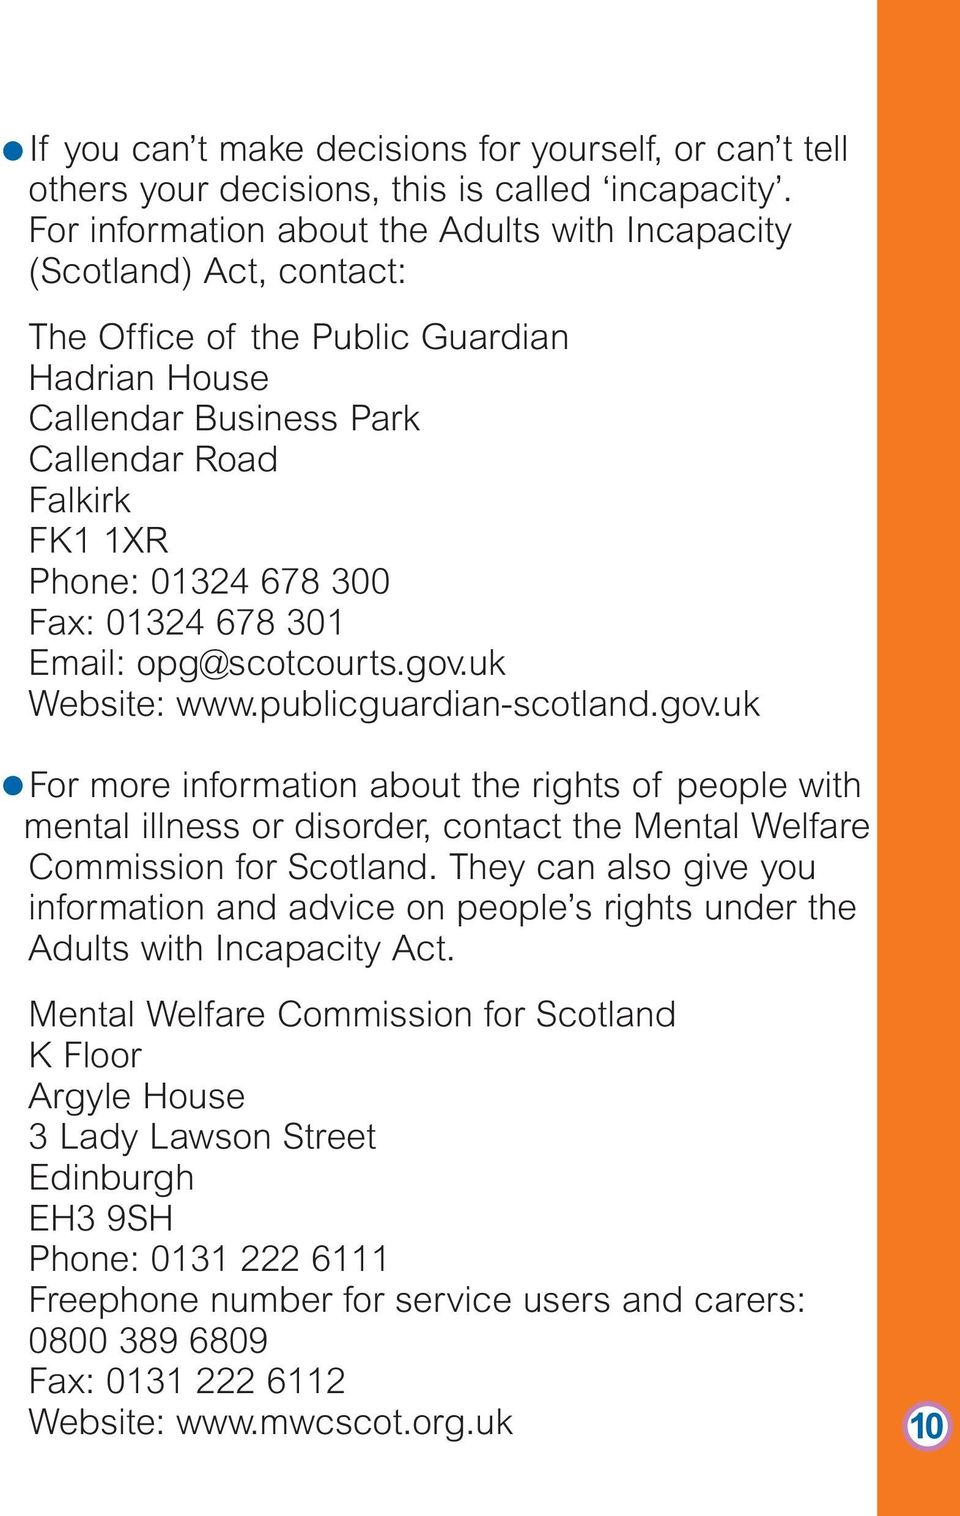 Fax: 01324 678 301 Email: opg@scotcourts.gov.uk Website: www.publicguardian-scotland.gov.uk For more information about the rights of people with mental illness or disorder, contact the Mental Welfare Commission for Scotland.